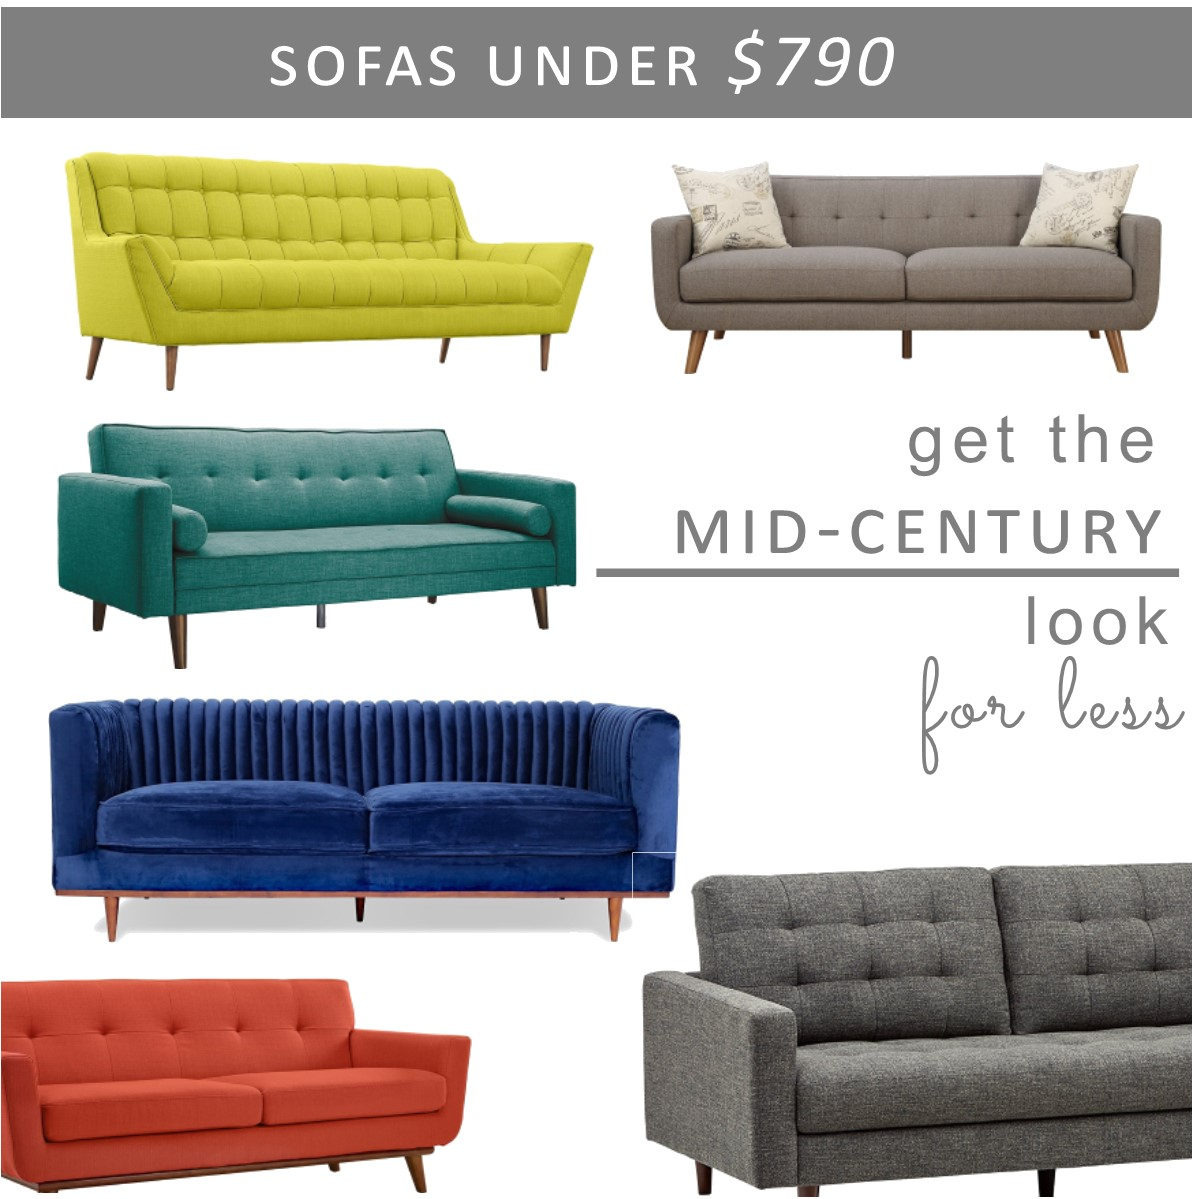 13 Affordable Mid Century Style Sofas Ranging From 336 790 All Online